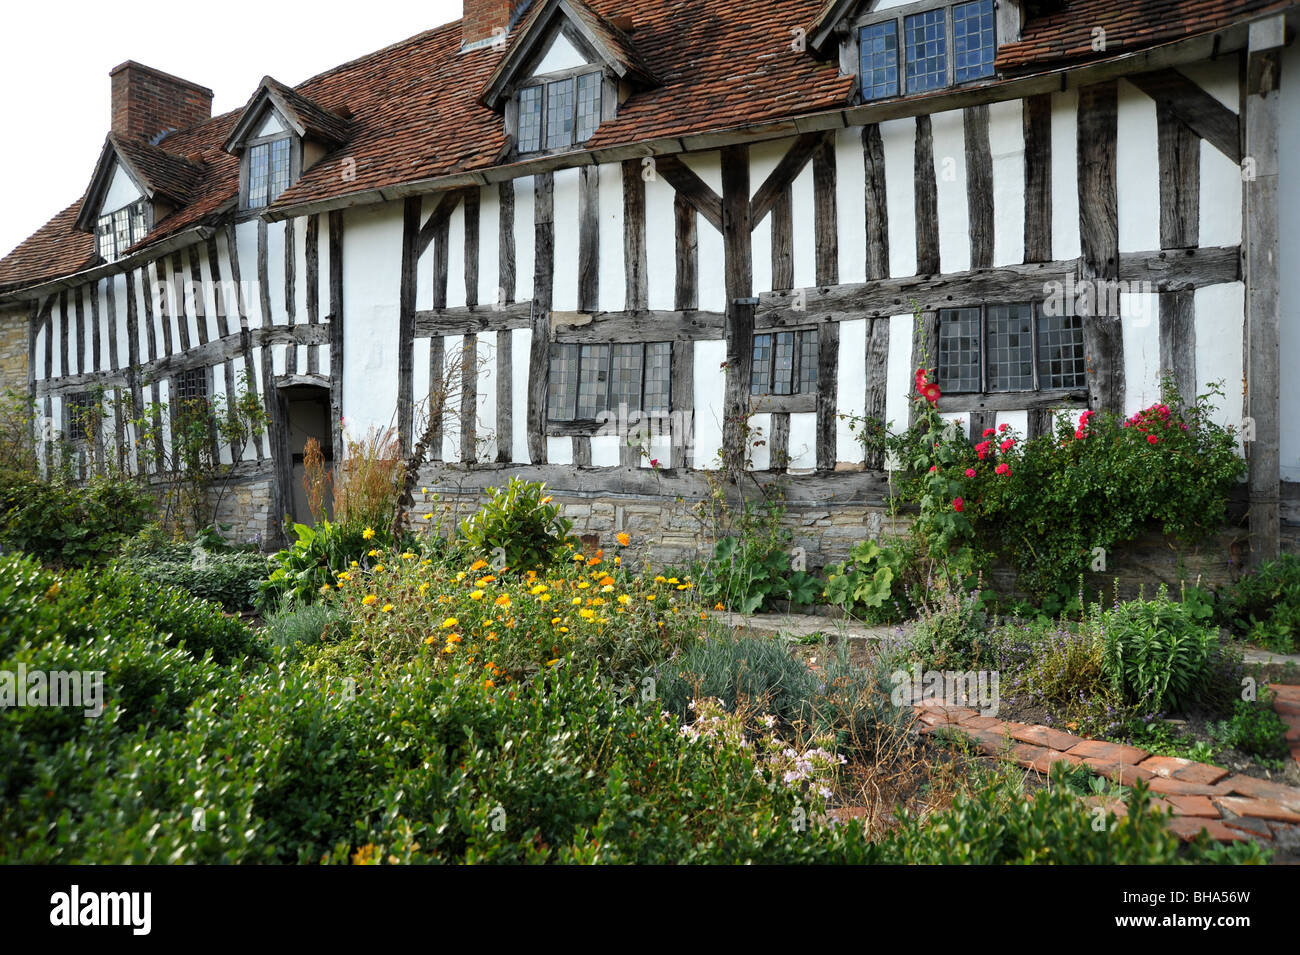 William Shakespeare's mother Mary Arden, her house at Wilmcote just outside Stratford upon Avon, Warwickshire, - Stock Image